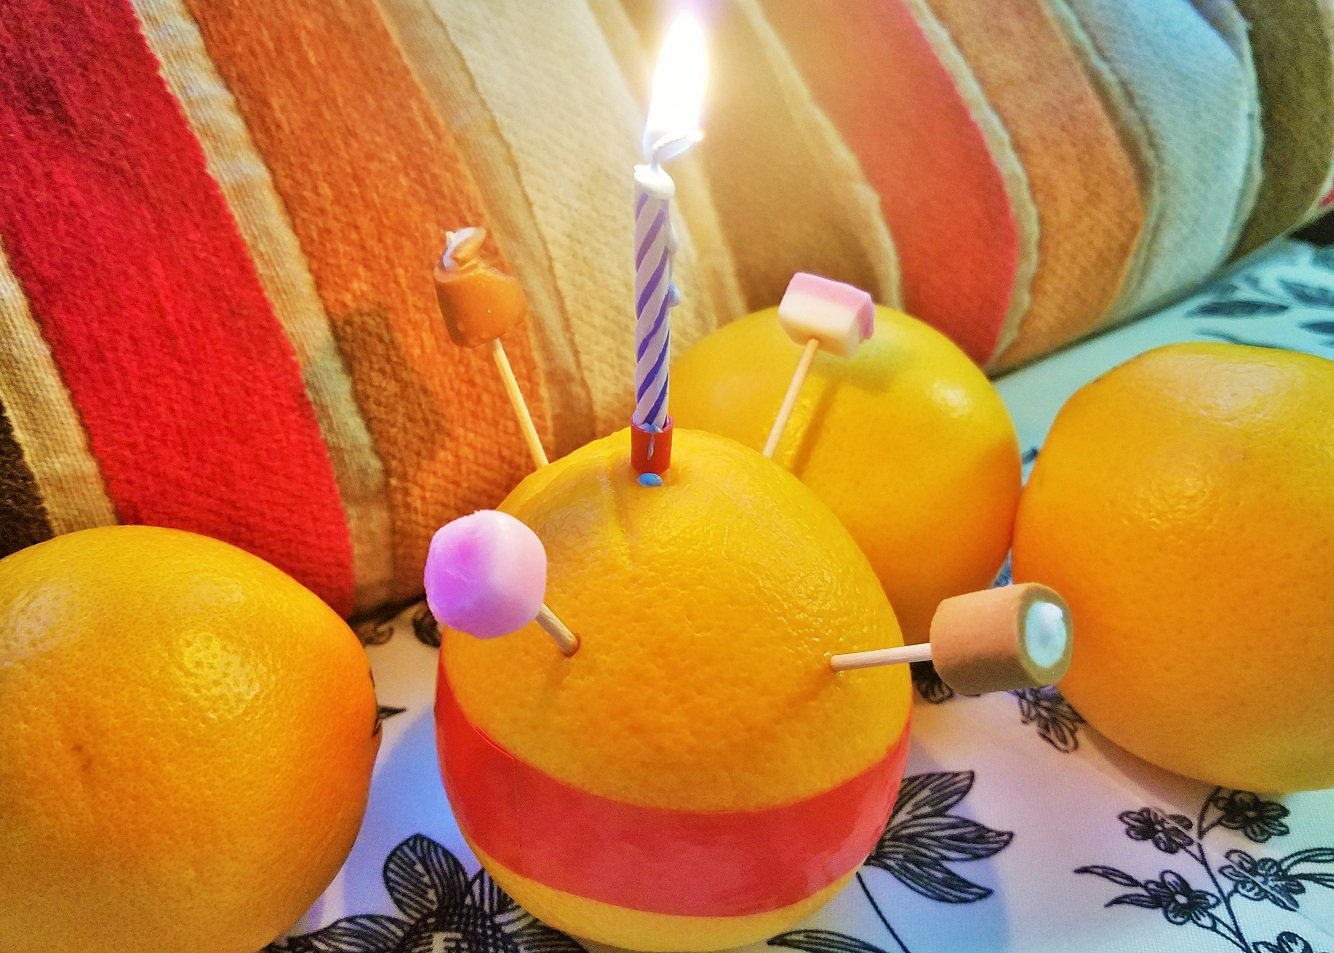 Simple Christingle talk BlogCrush Week 42